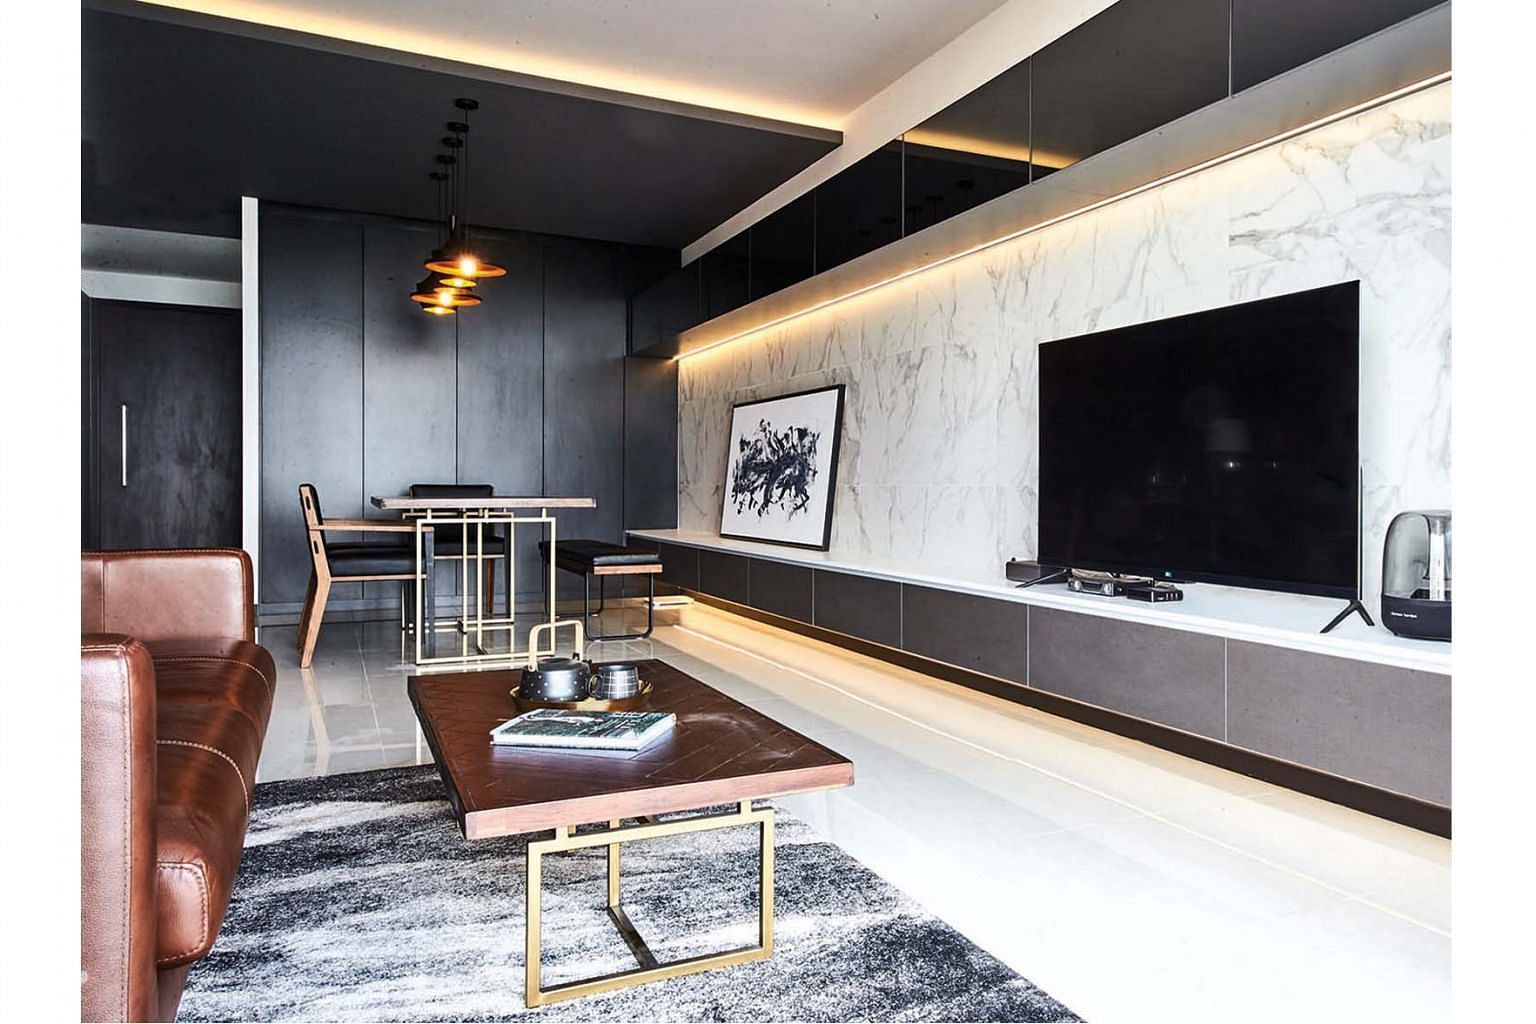 One of the home owners always dreamt of a marble feature wall, but large slabs of marble were not readily available and difficult to transport into smaller apartments, so she opted for tiles.